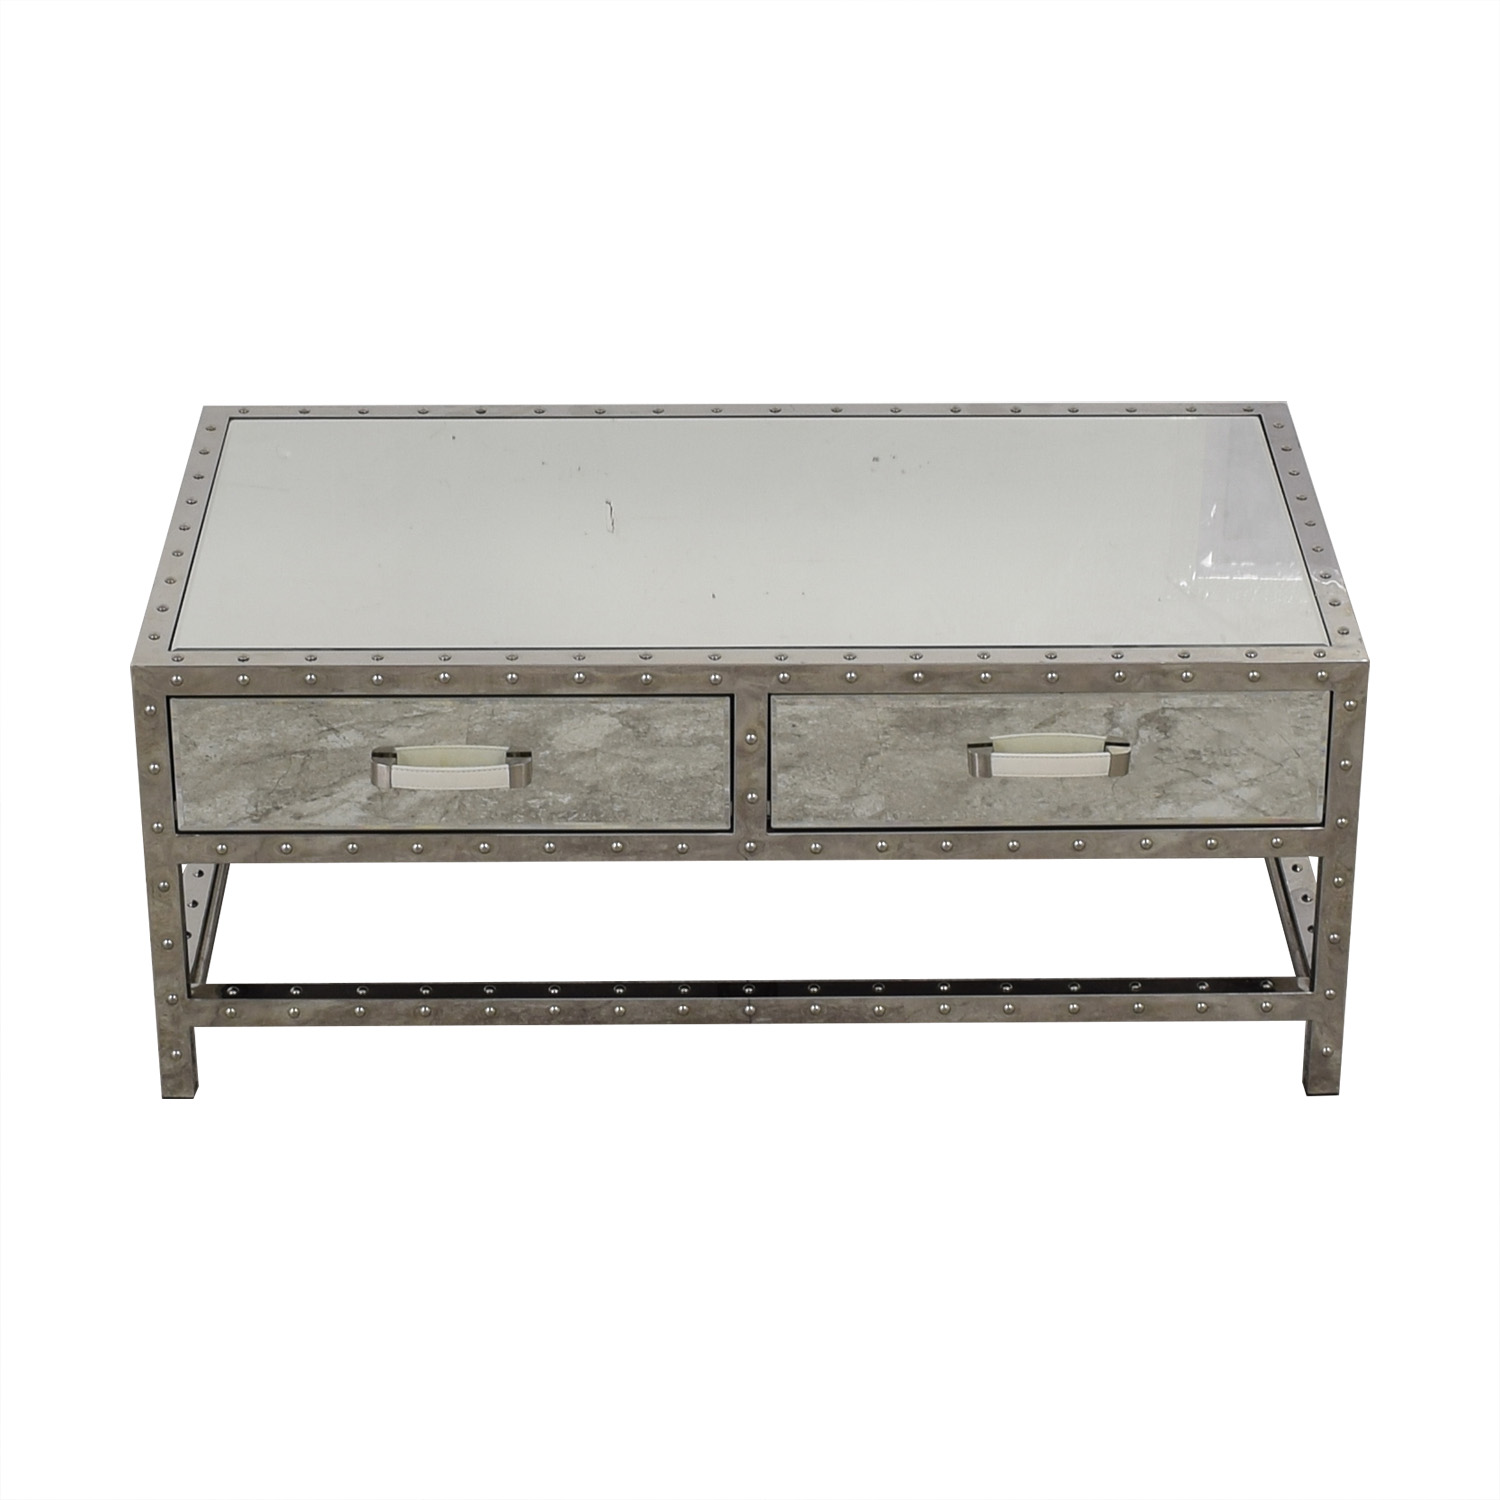 Modani Modani Valentino Mirror and Chrome Coffee Table price